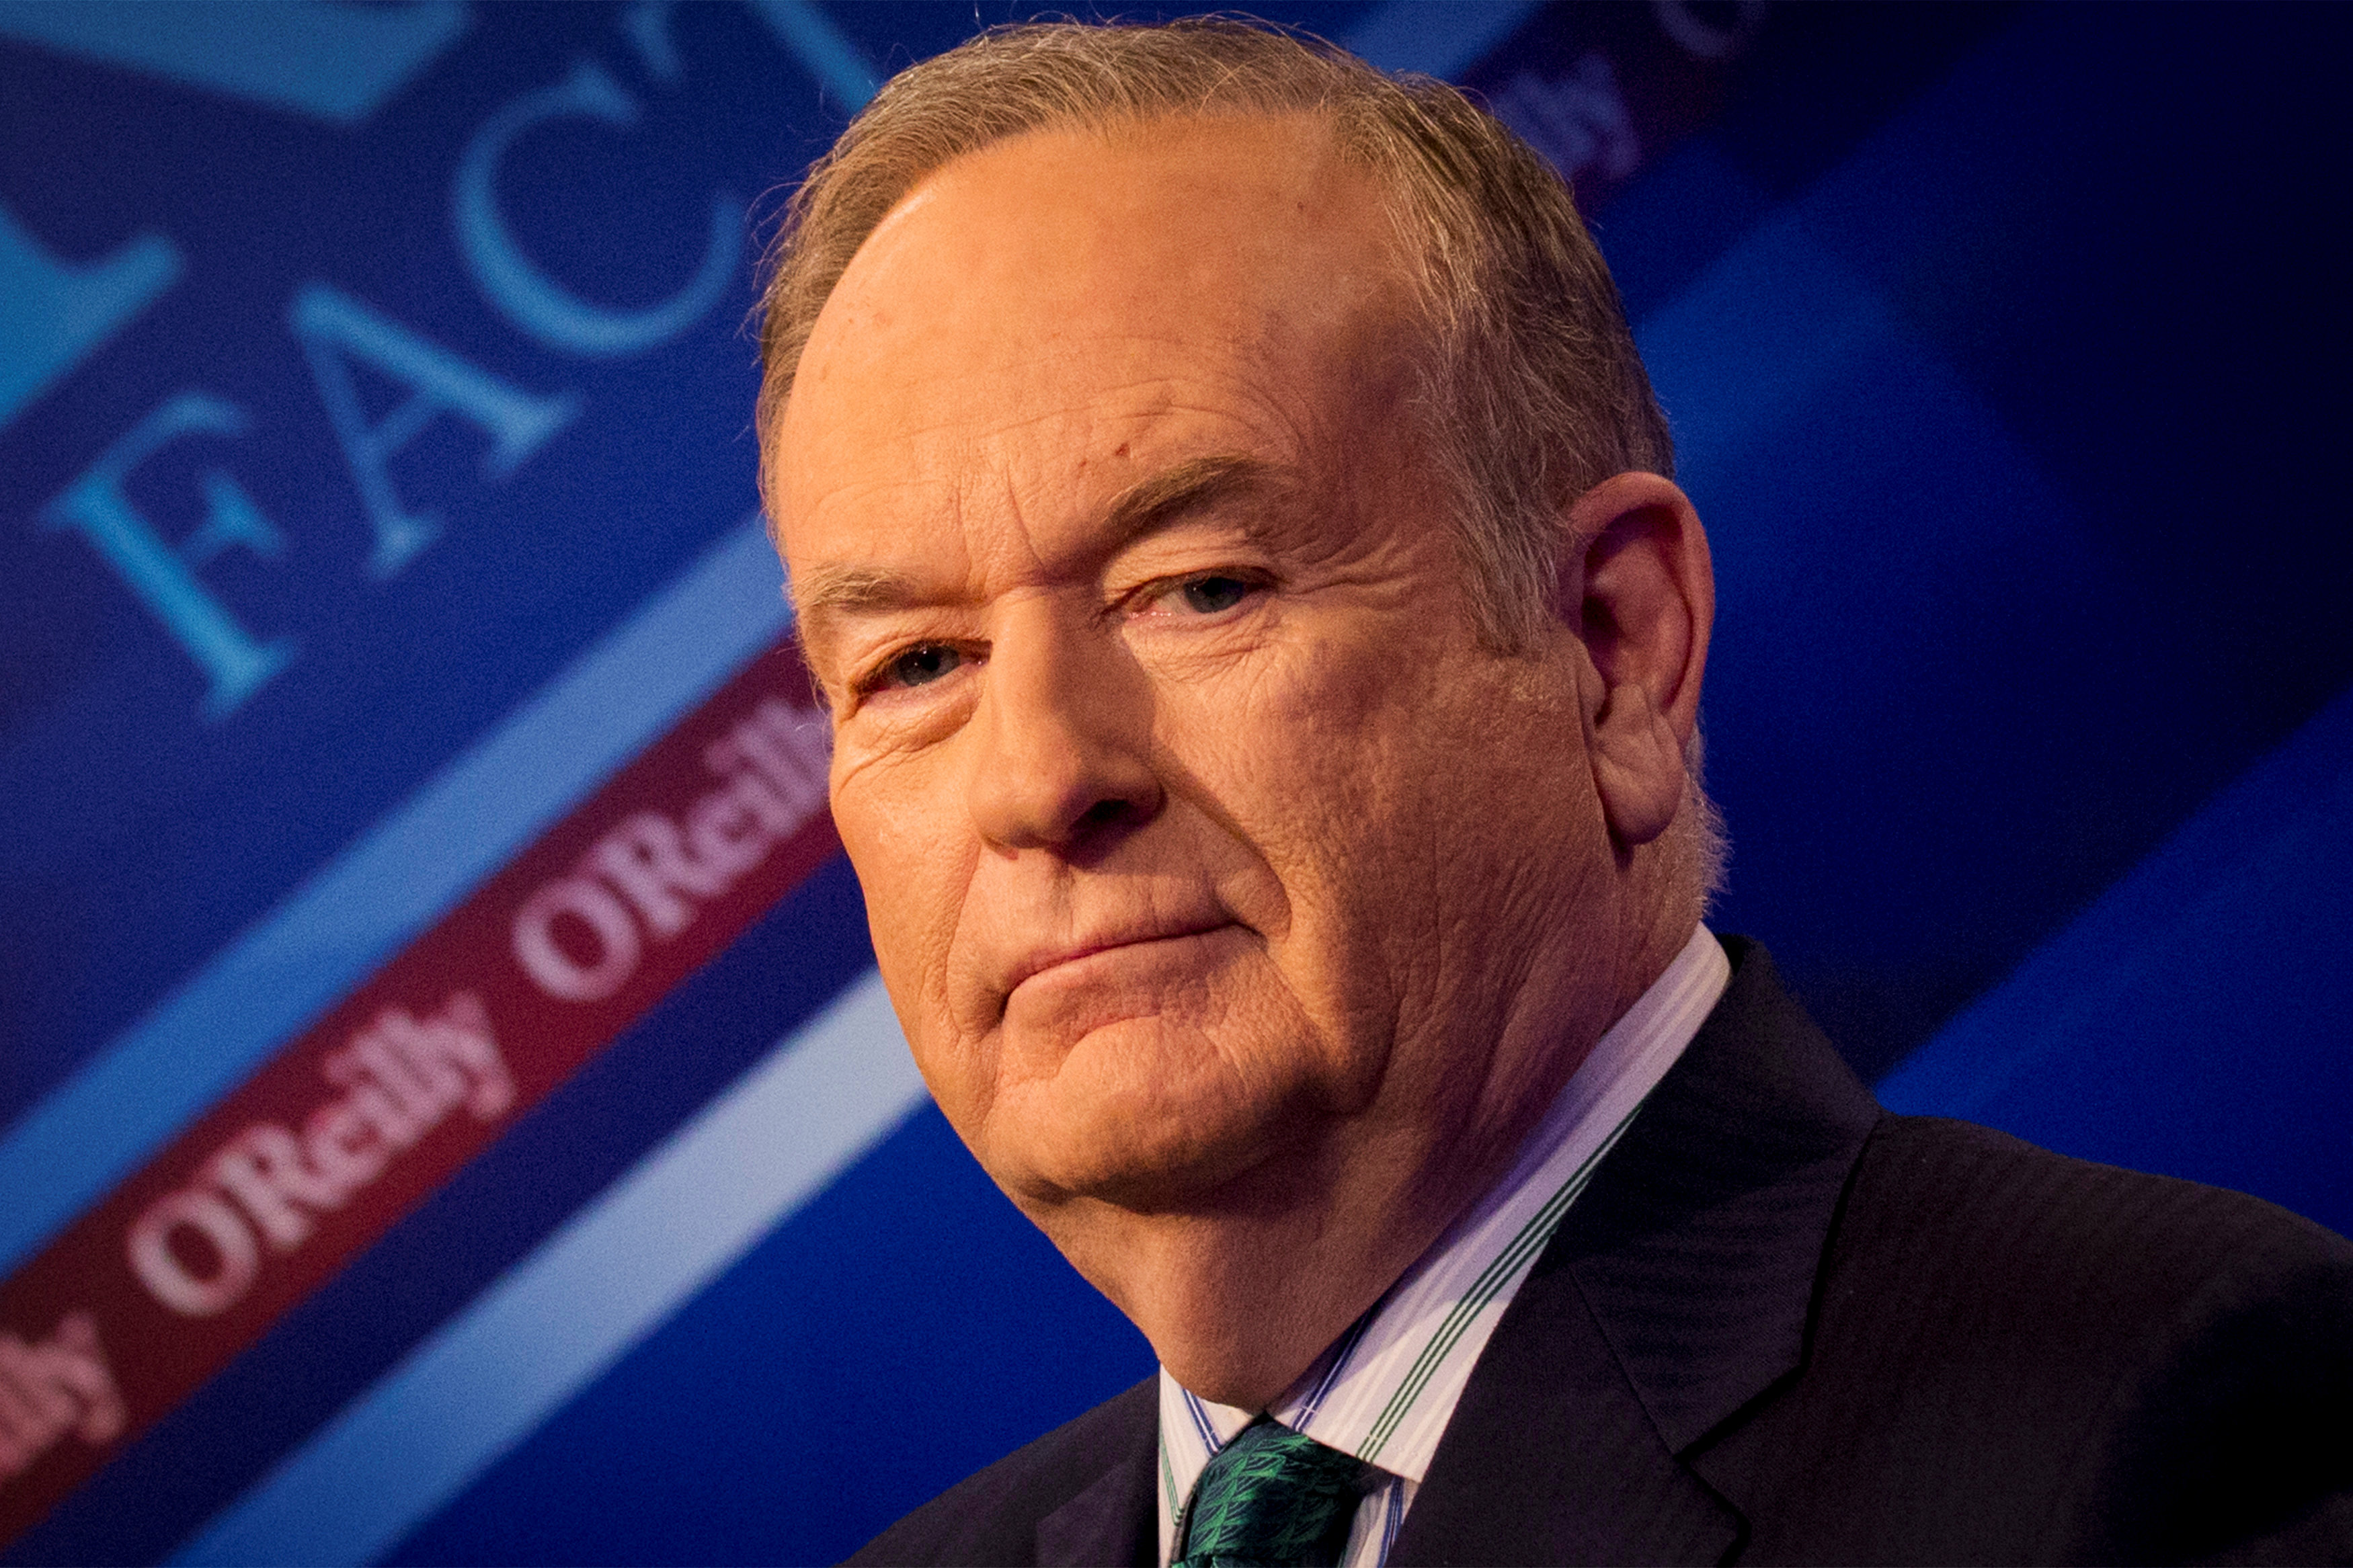 FOX News Drops Bill O'Reilly